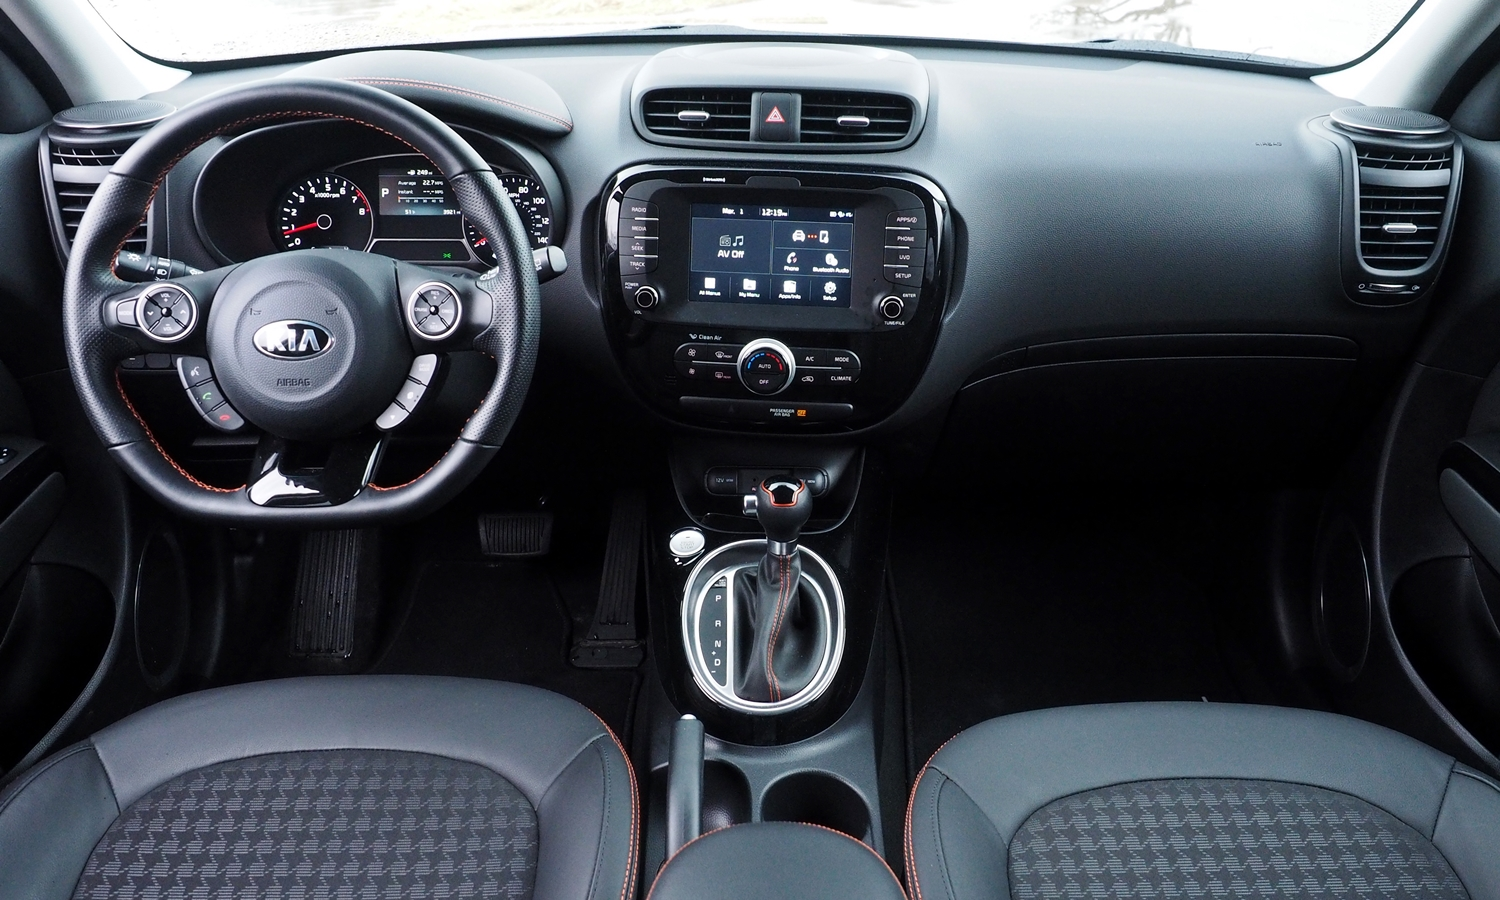 Kia Soul Photos: 2017 Kia Soul ! instrument panel full